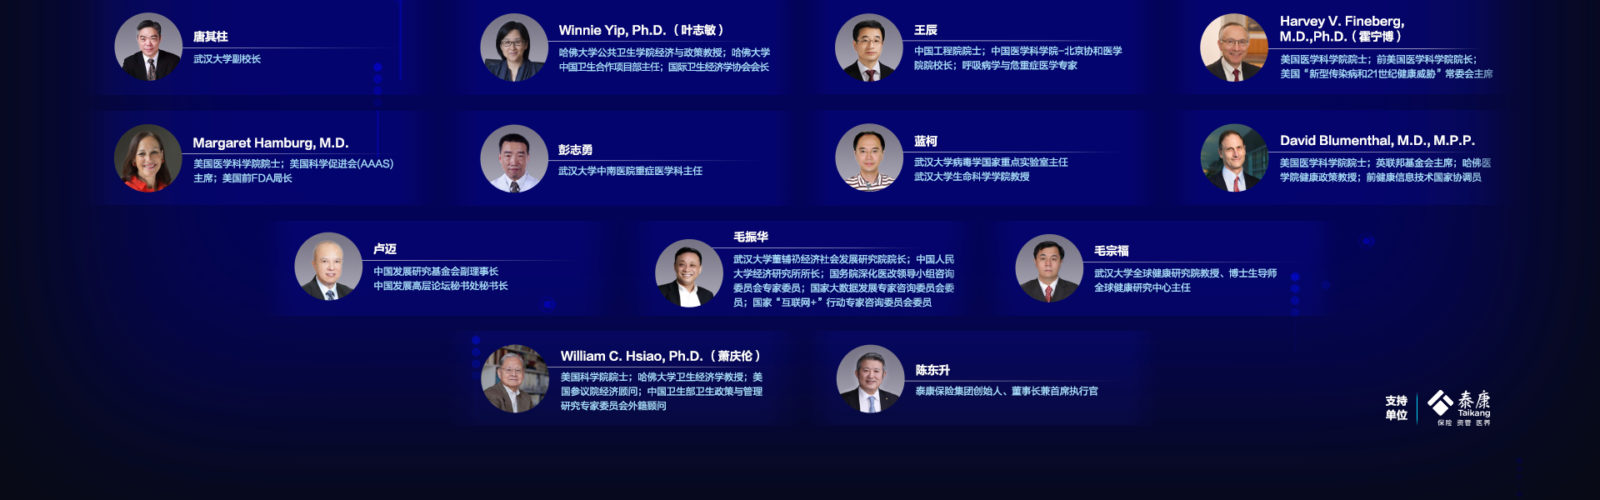 Harvard Chan School-Wuhan University Joint Seminar on Health System Response to COVID-19